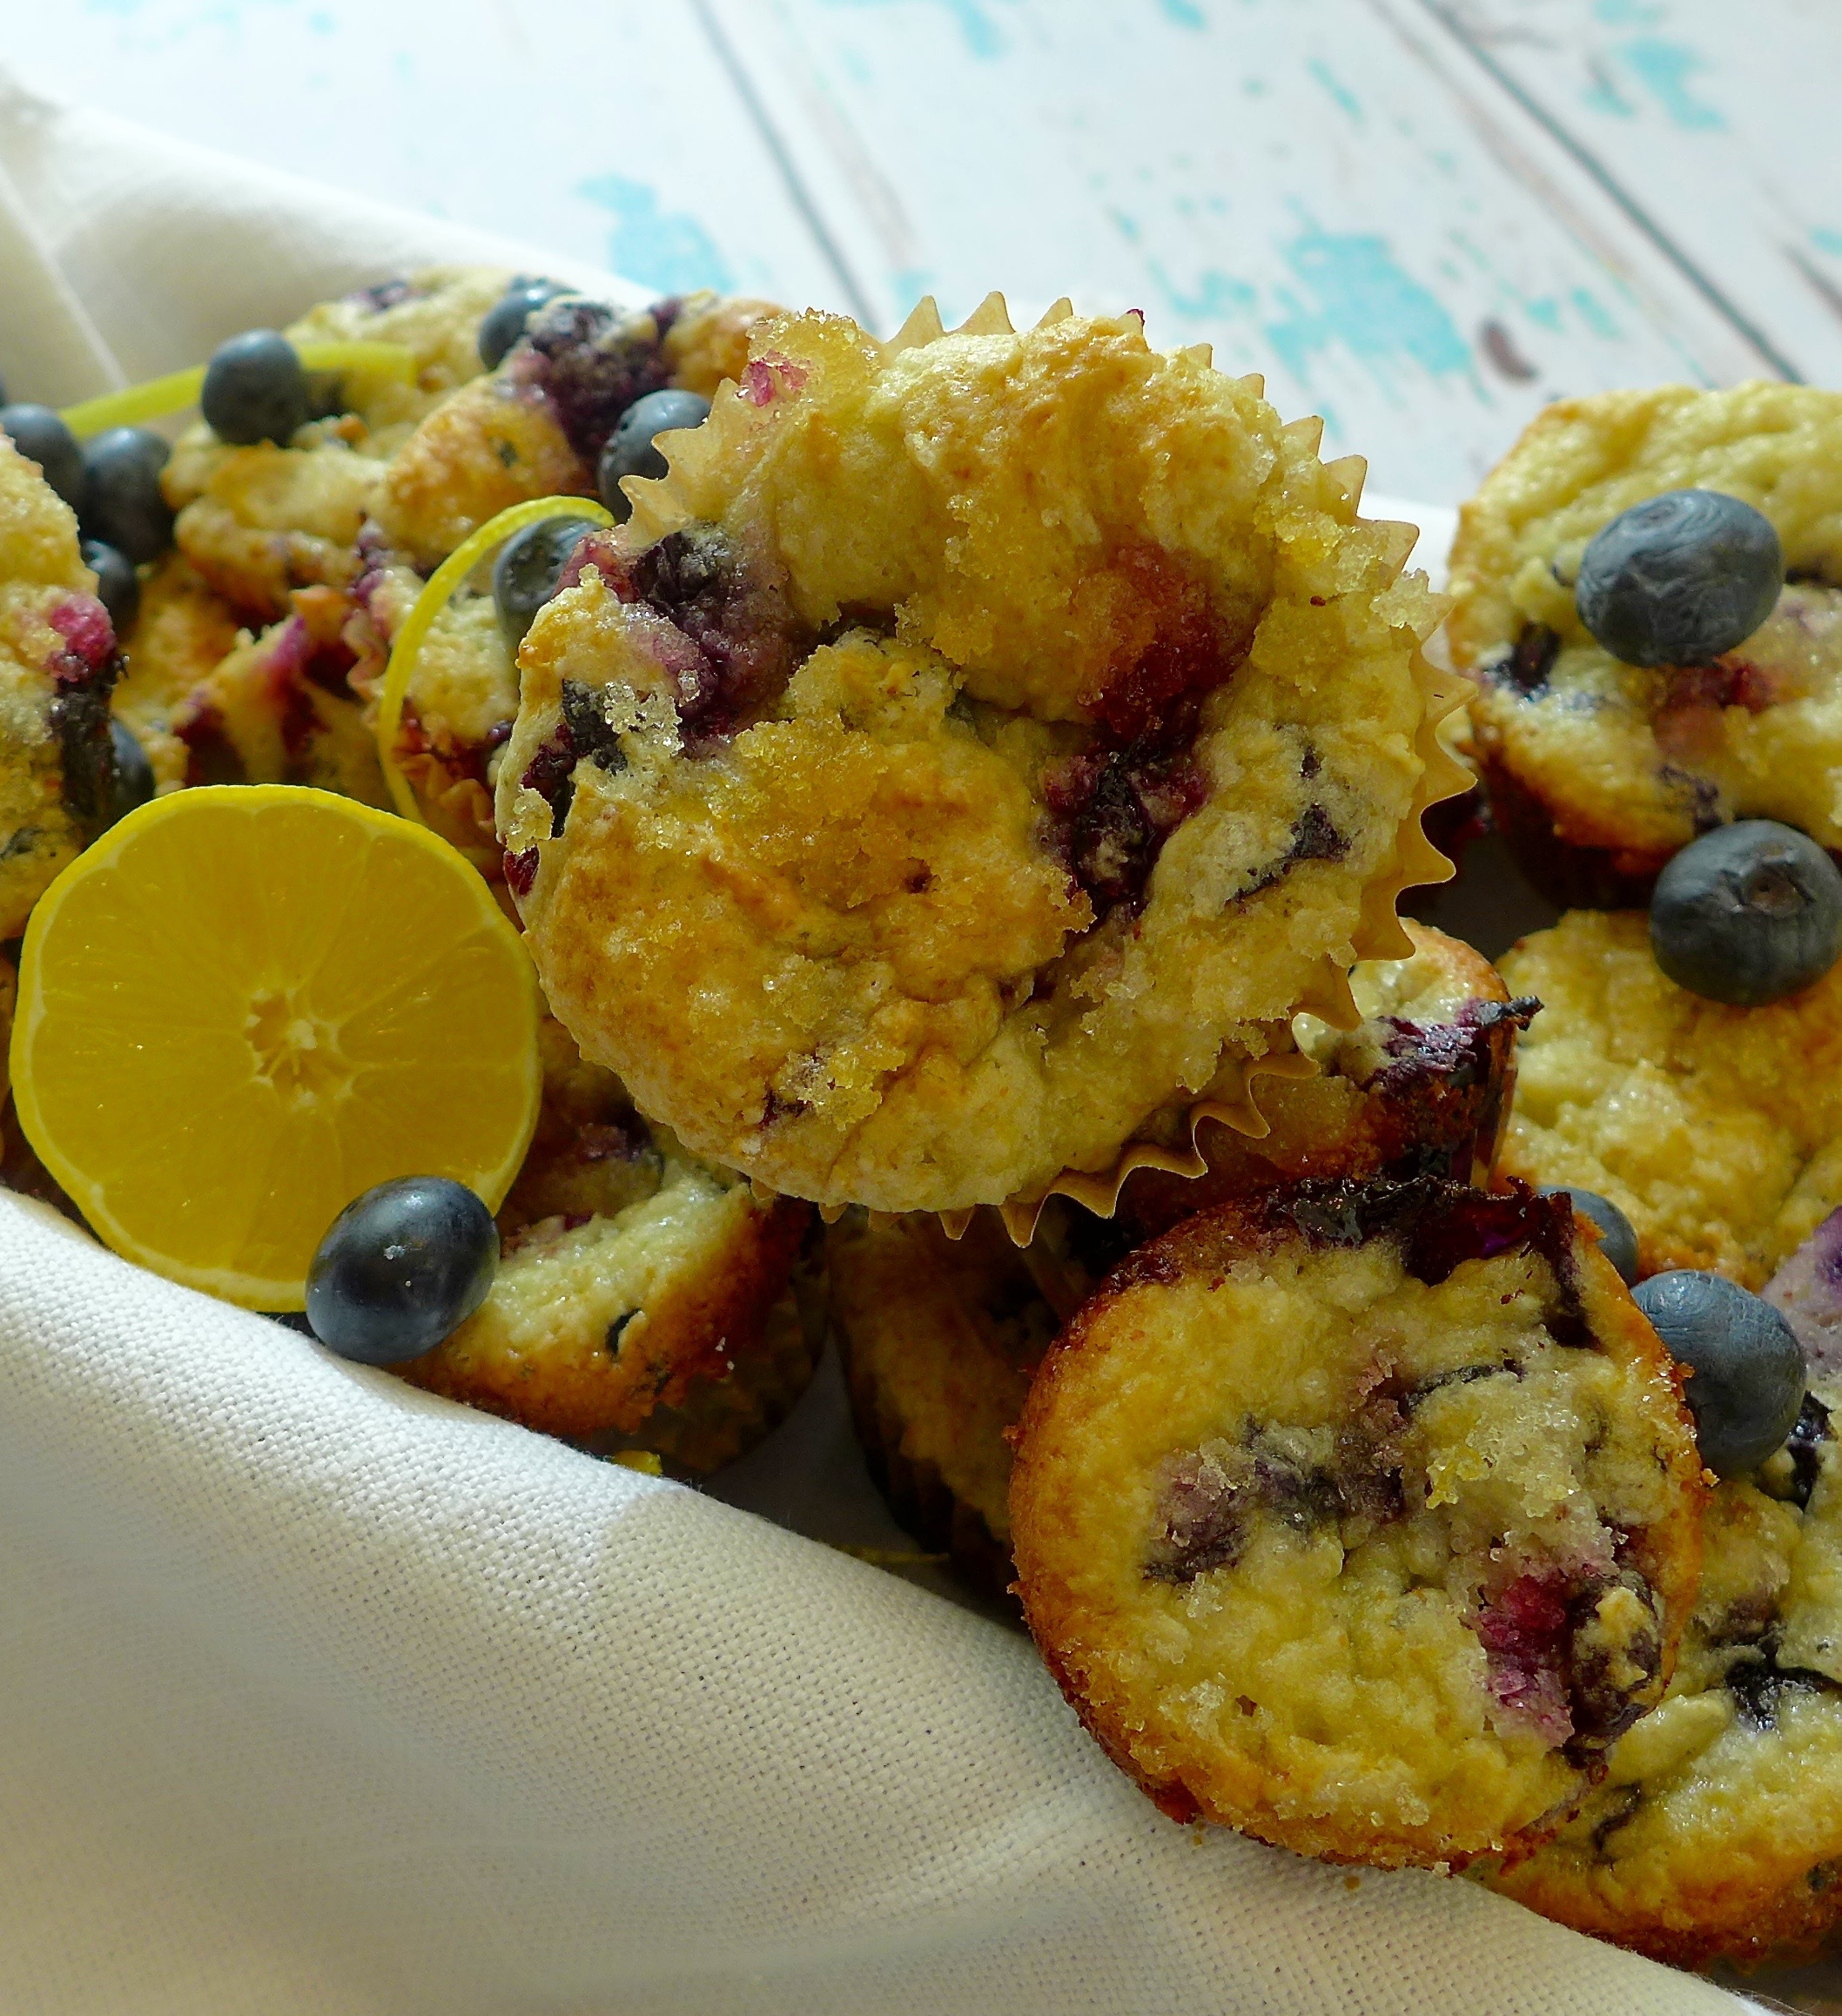 Dig in to the very best blueberry muffins and discover new ways to adapt this easy recipe to your own taste.